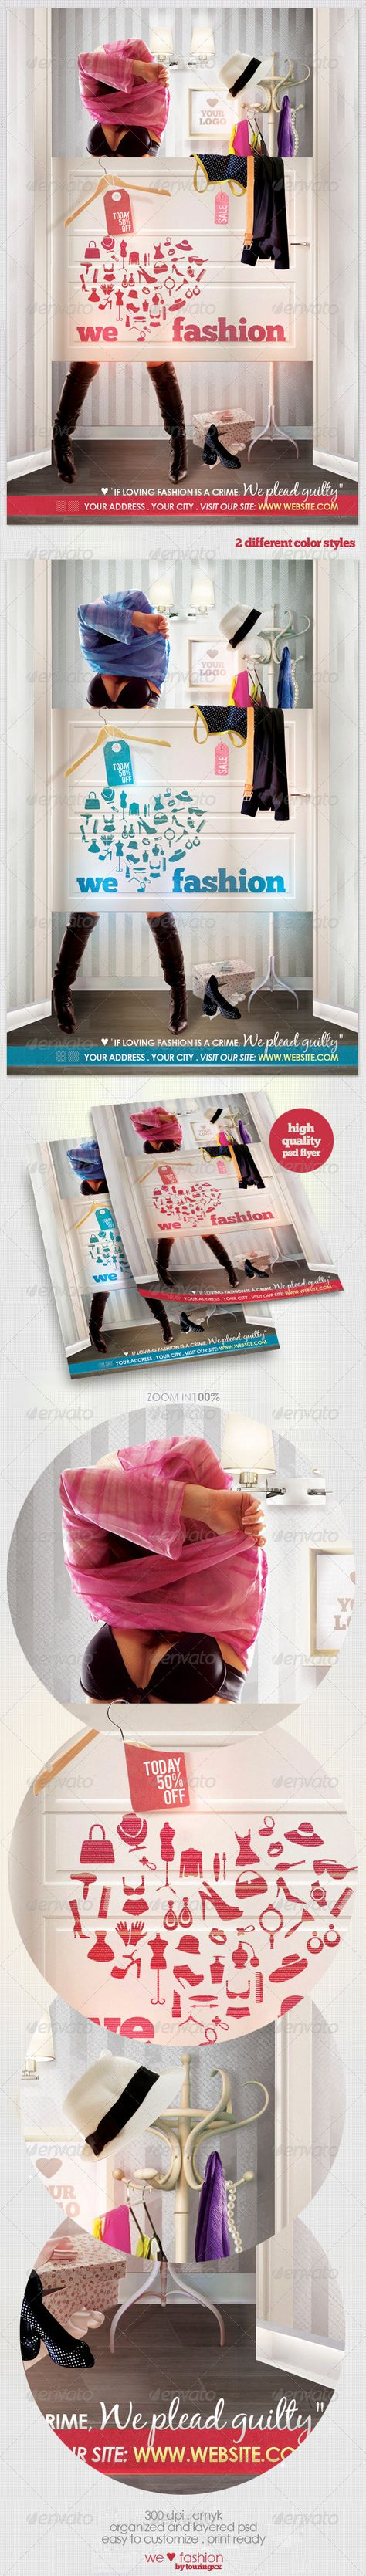 We Love Fashion Flyer Template / $6. ****This flyer is perfect for the promotion of Shops/Boutiques, Sales/Promotions, Fashion Shows, New Collections or whatever you want!.***